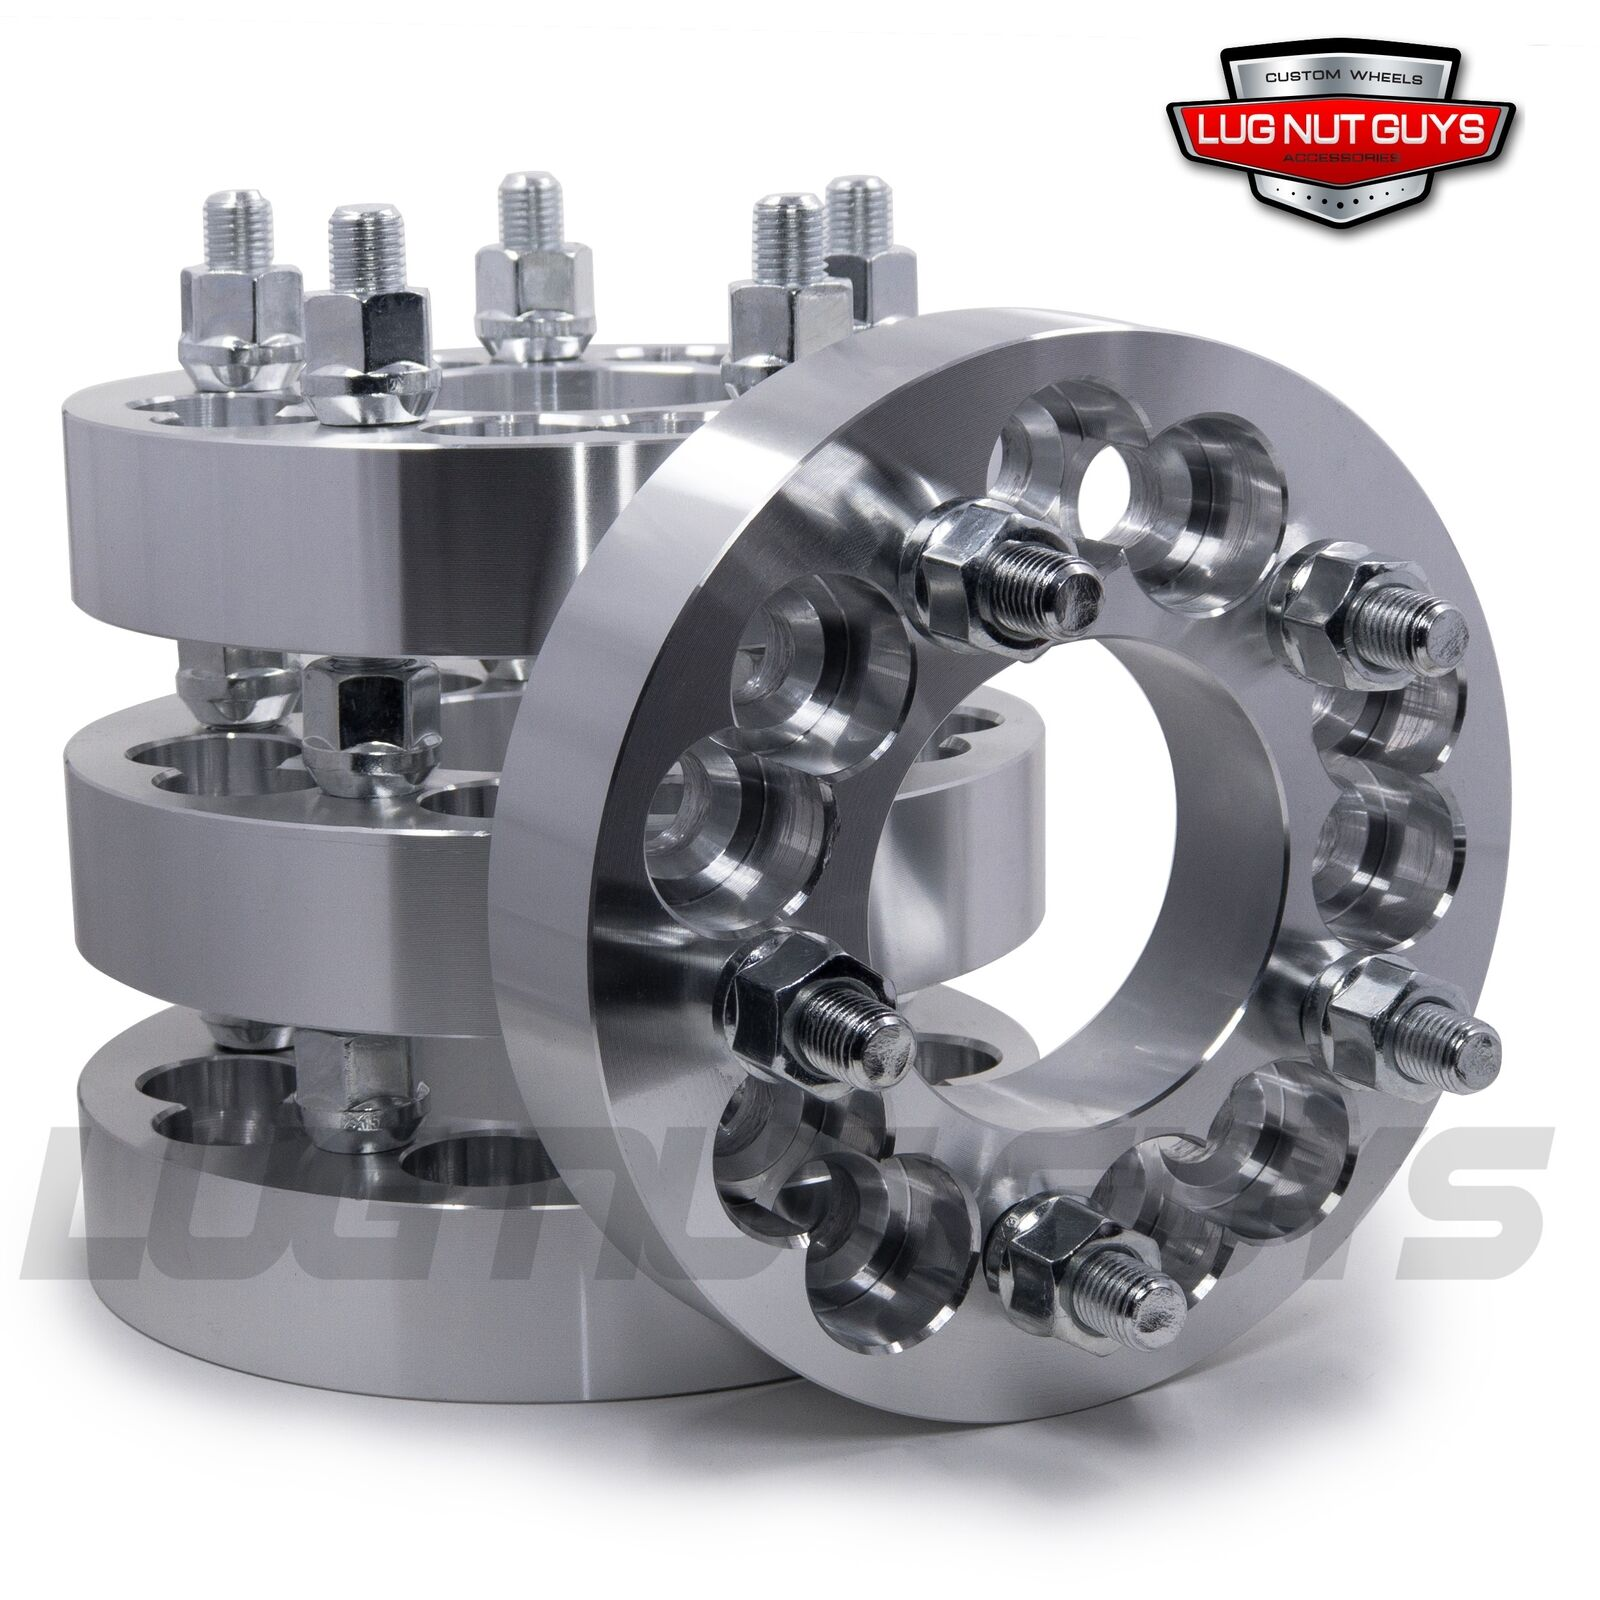 "4X 1.25/"" Adapter 5x4.75 to 5x4.5 Wheel Spacers For 83-94 Chevrolet S10 Blazer"